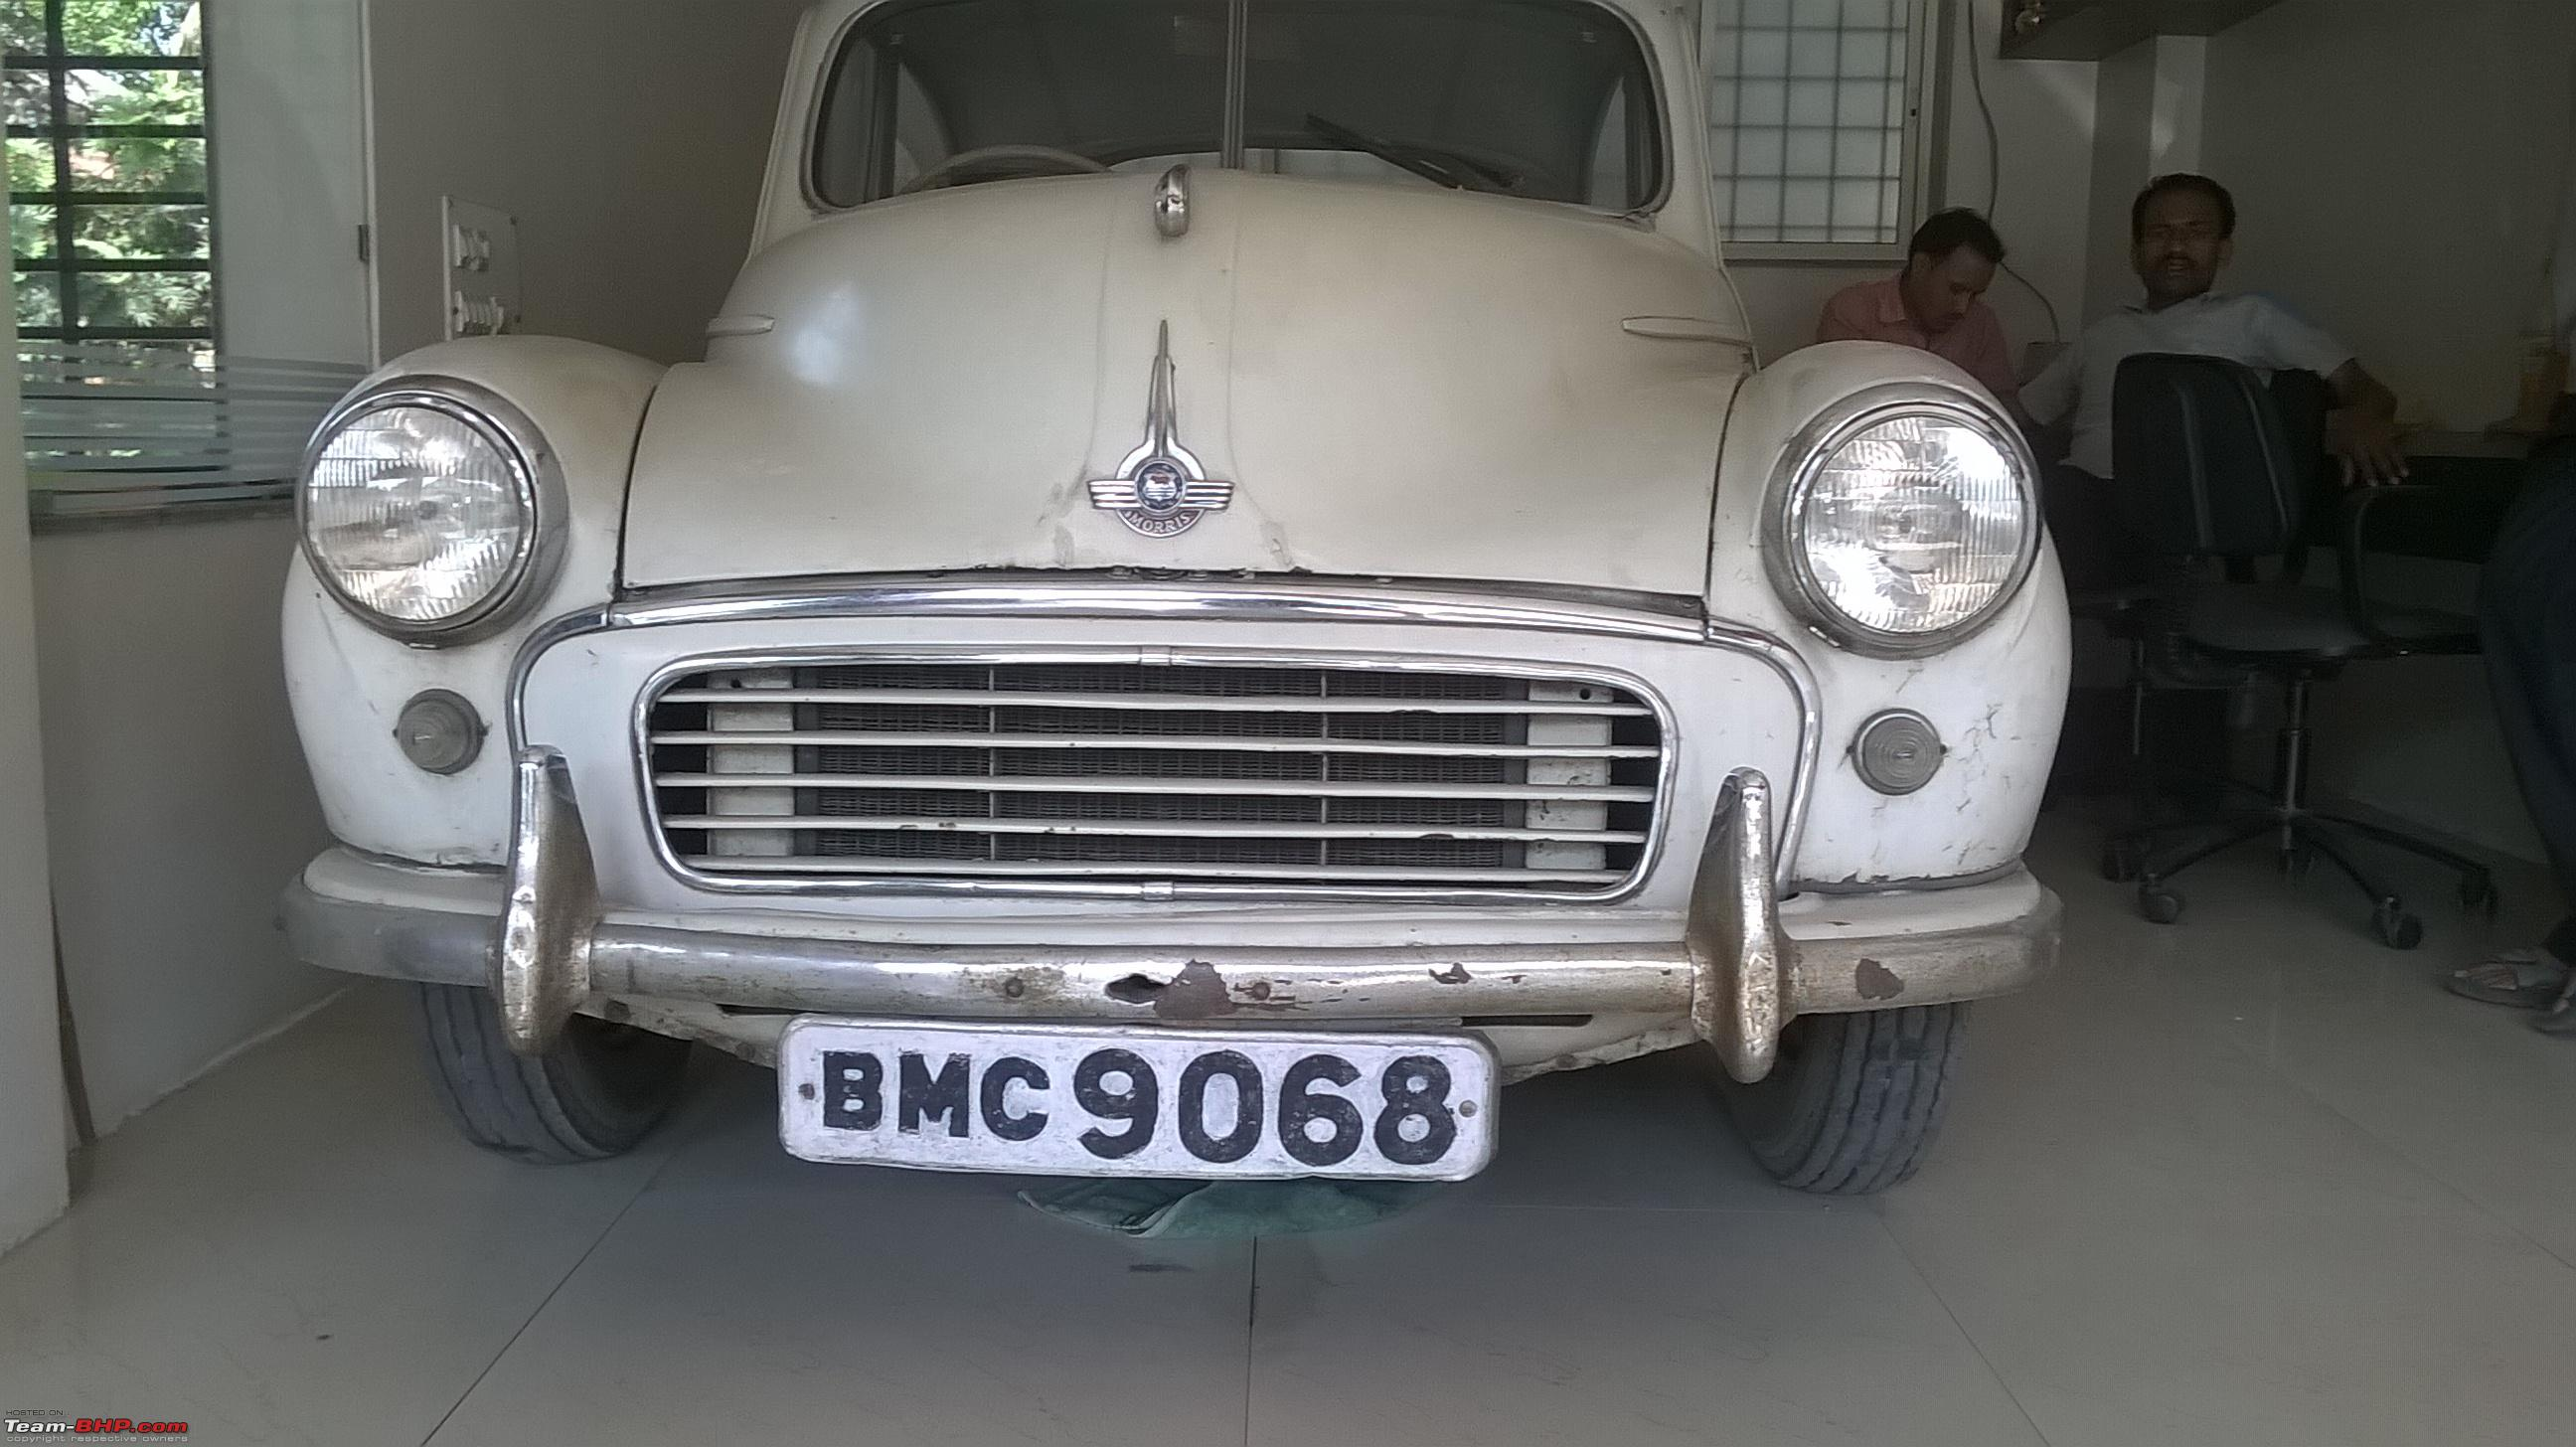 Pics: Vintage & Classic cars in India - Page 163 - Team-BHP